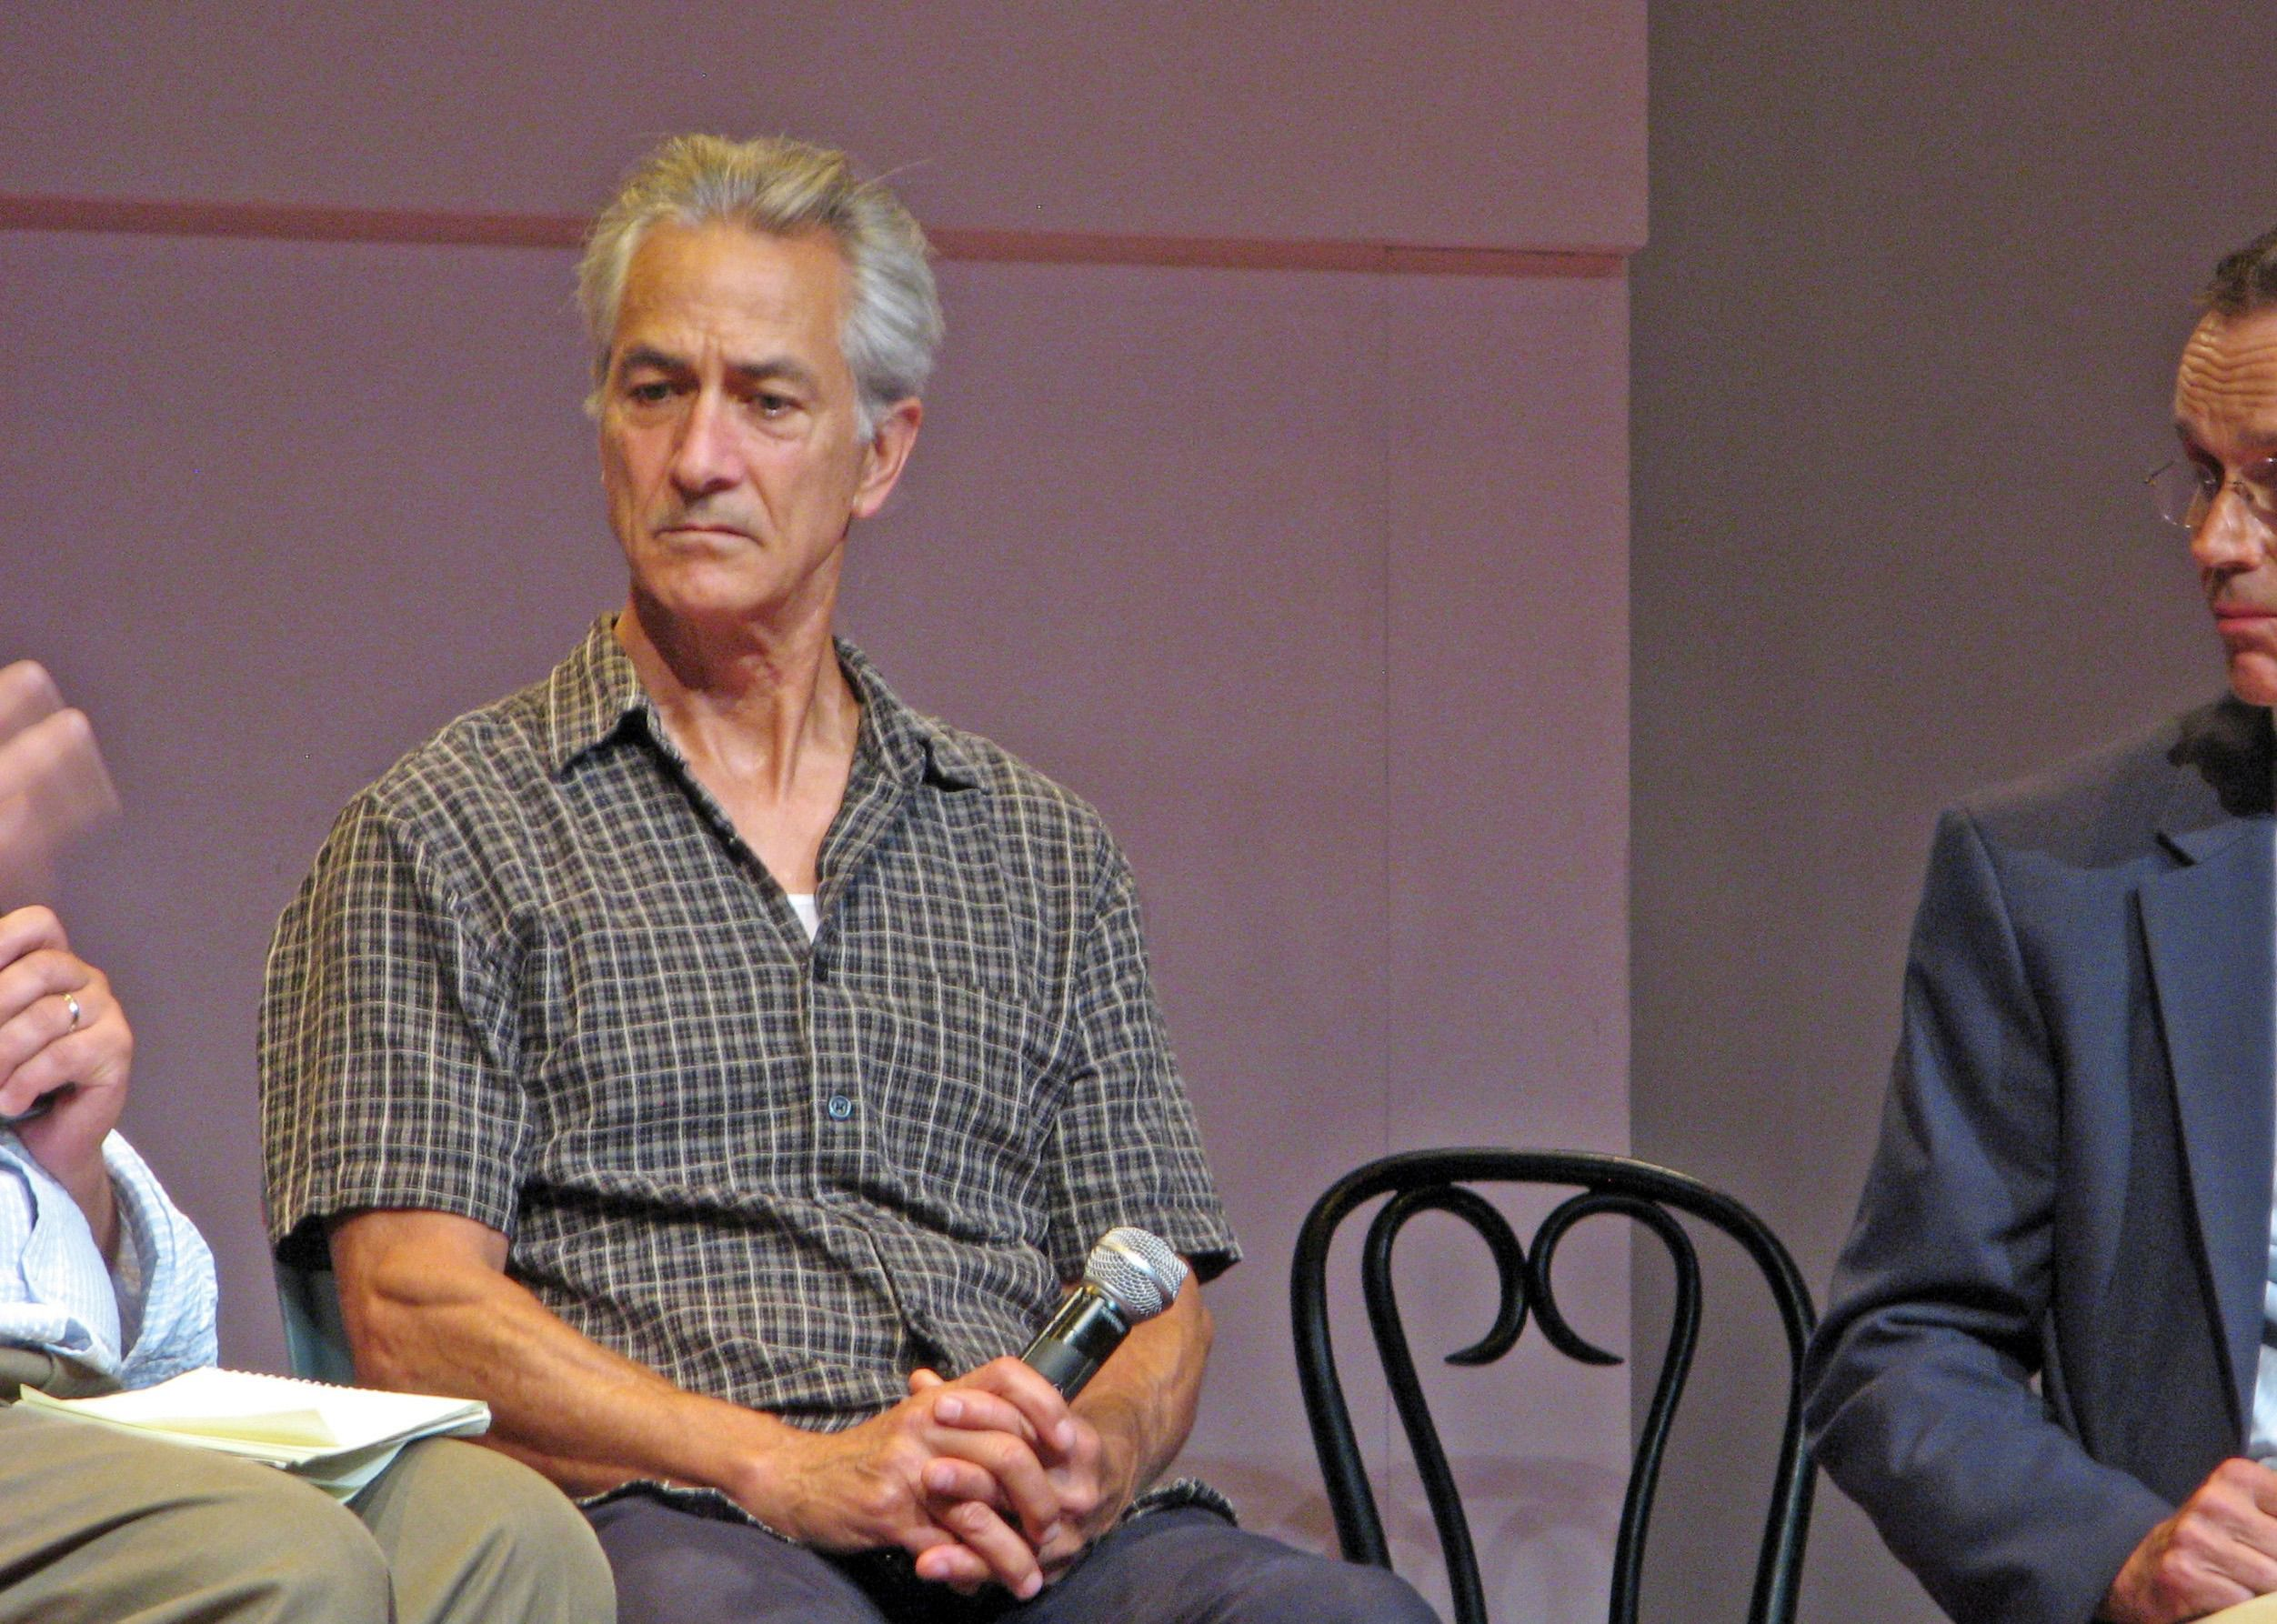 David Strathairn as Jan Karski